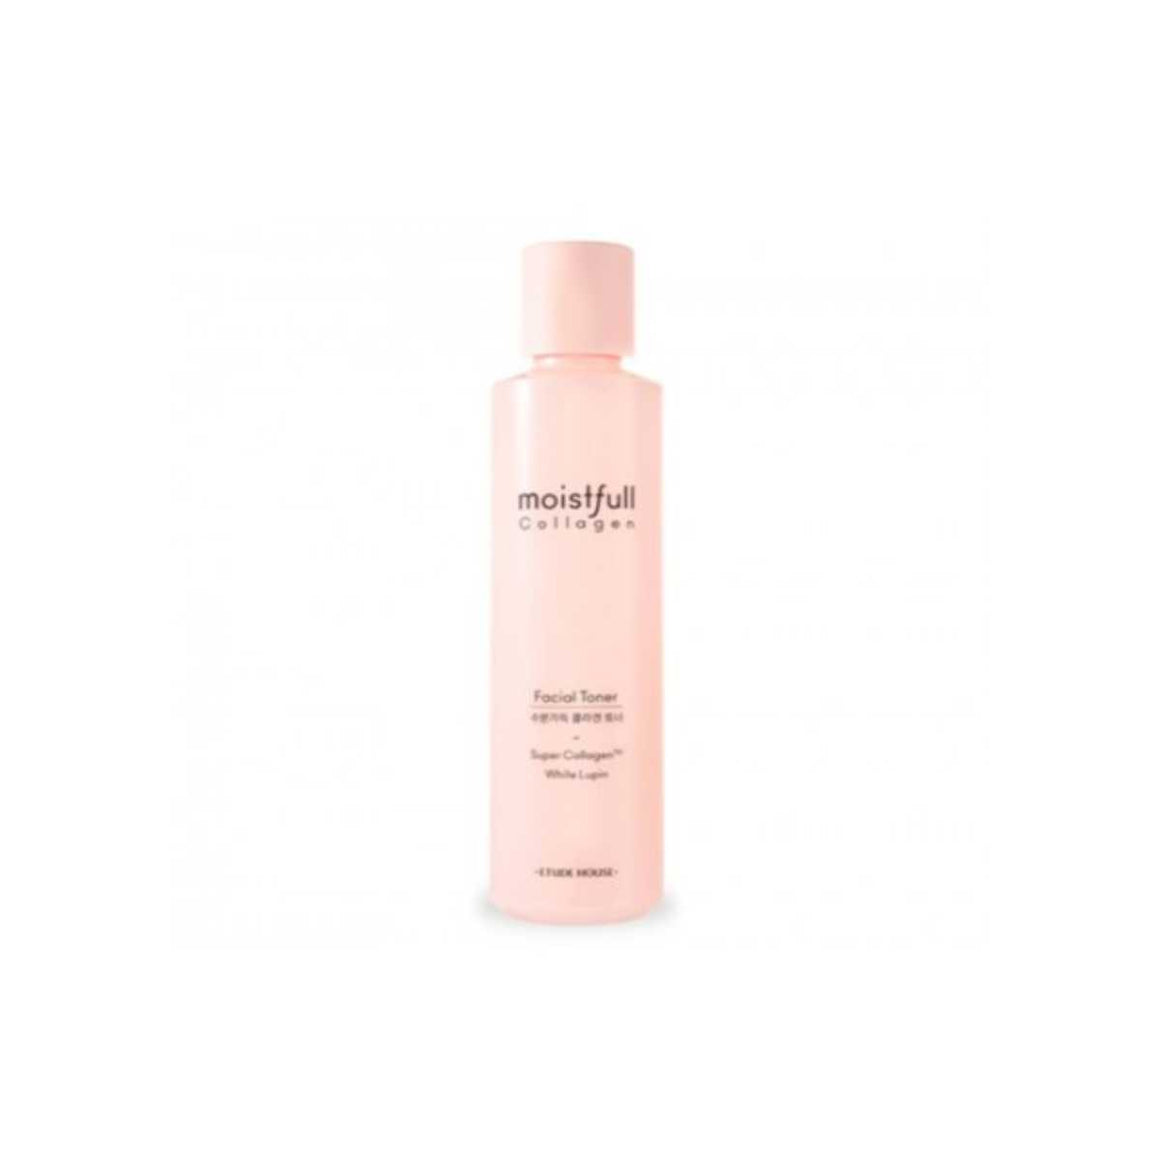 Etude House Moistfull Collagen Facial Toner (NEW)